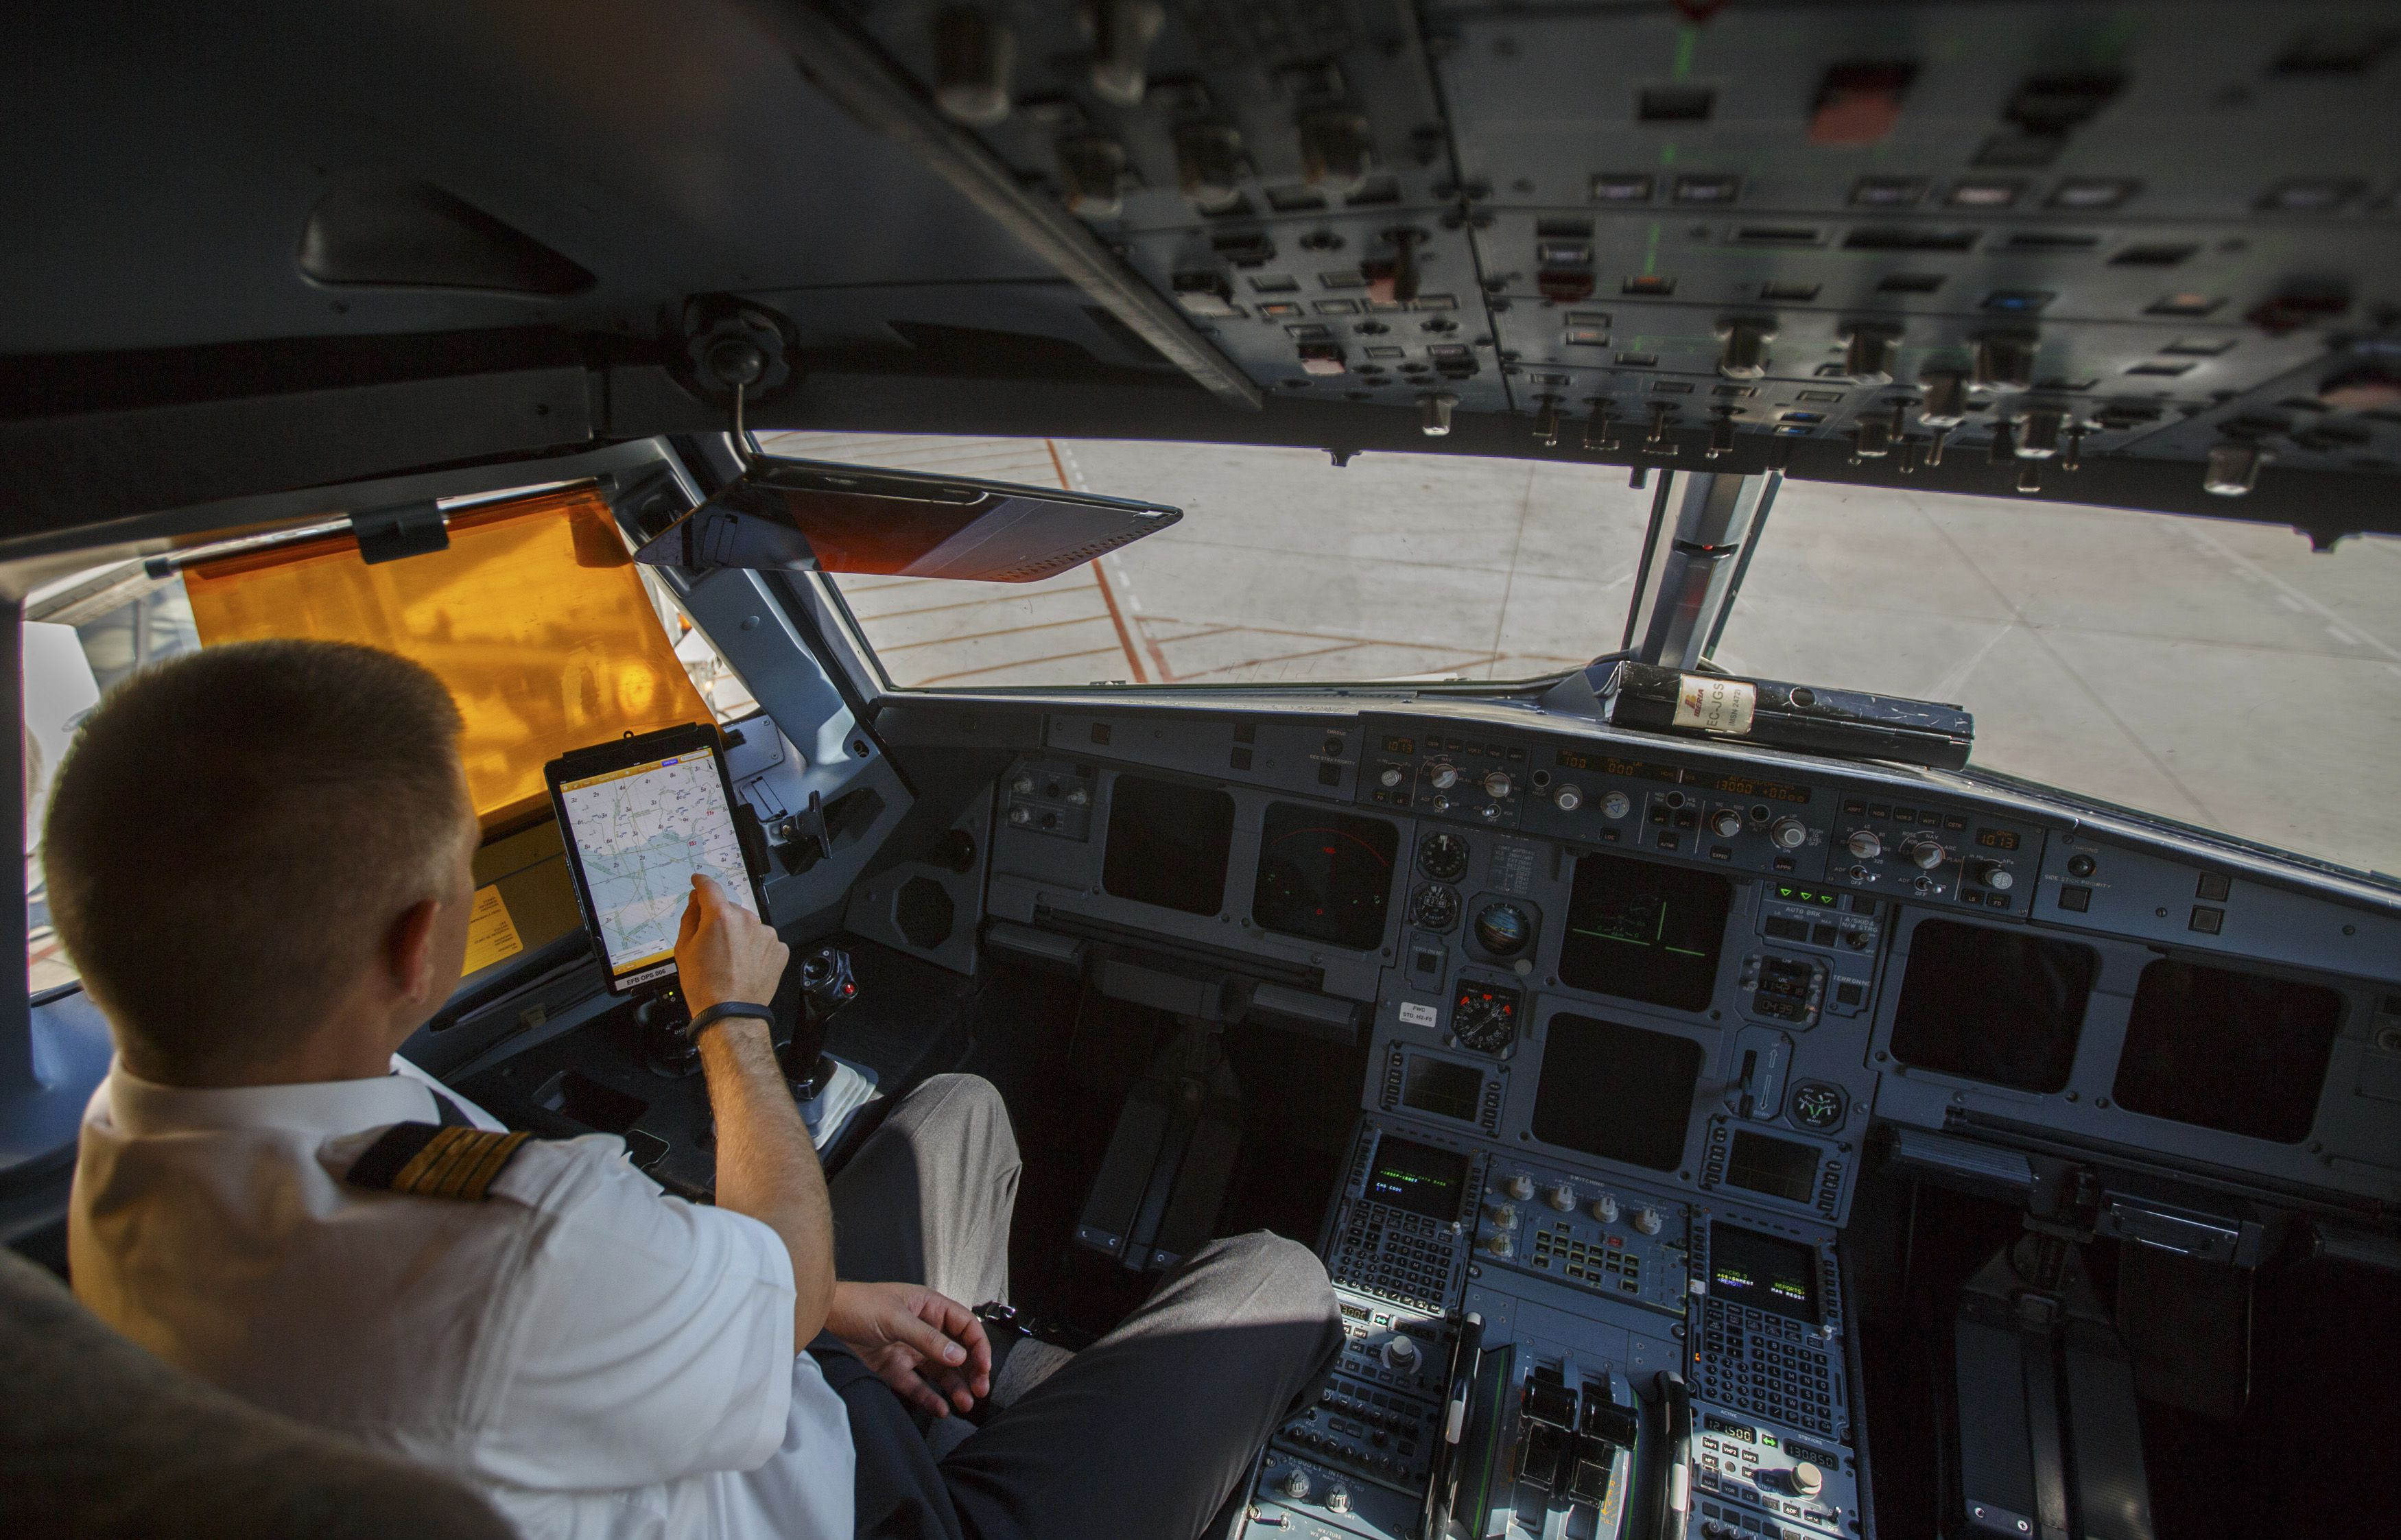 An Iberia Airlines pilot touches the screen of an iPad during a demonstration inside a cockpit of a passenger plane at Terminal 4 of Madrid's Adolfo Suarez Barajas airport